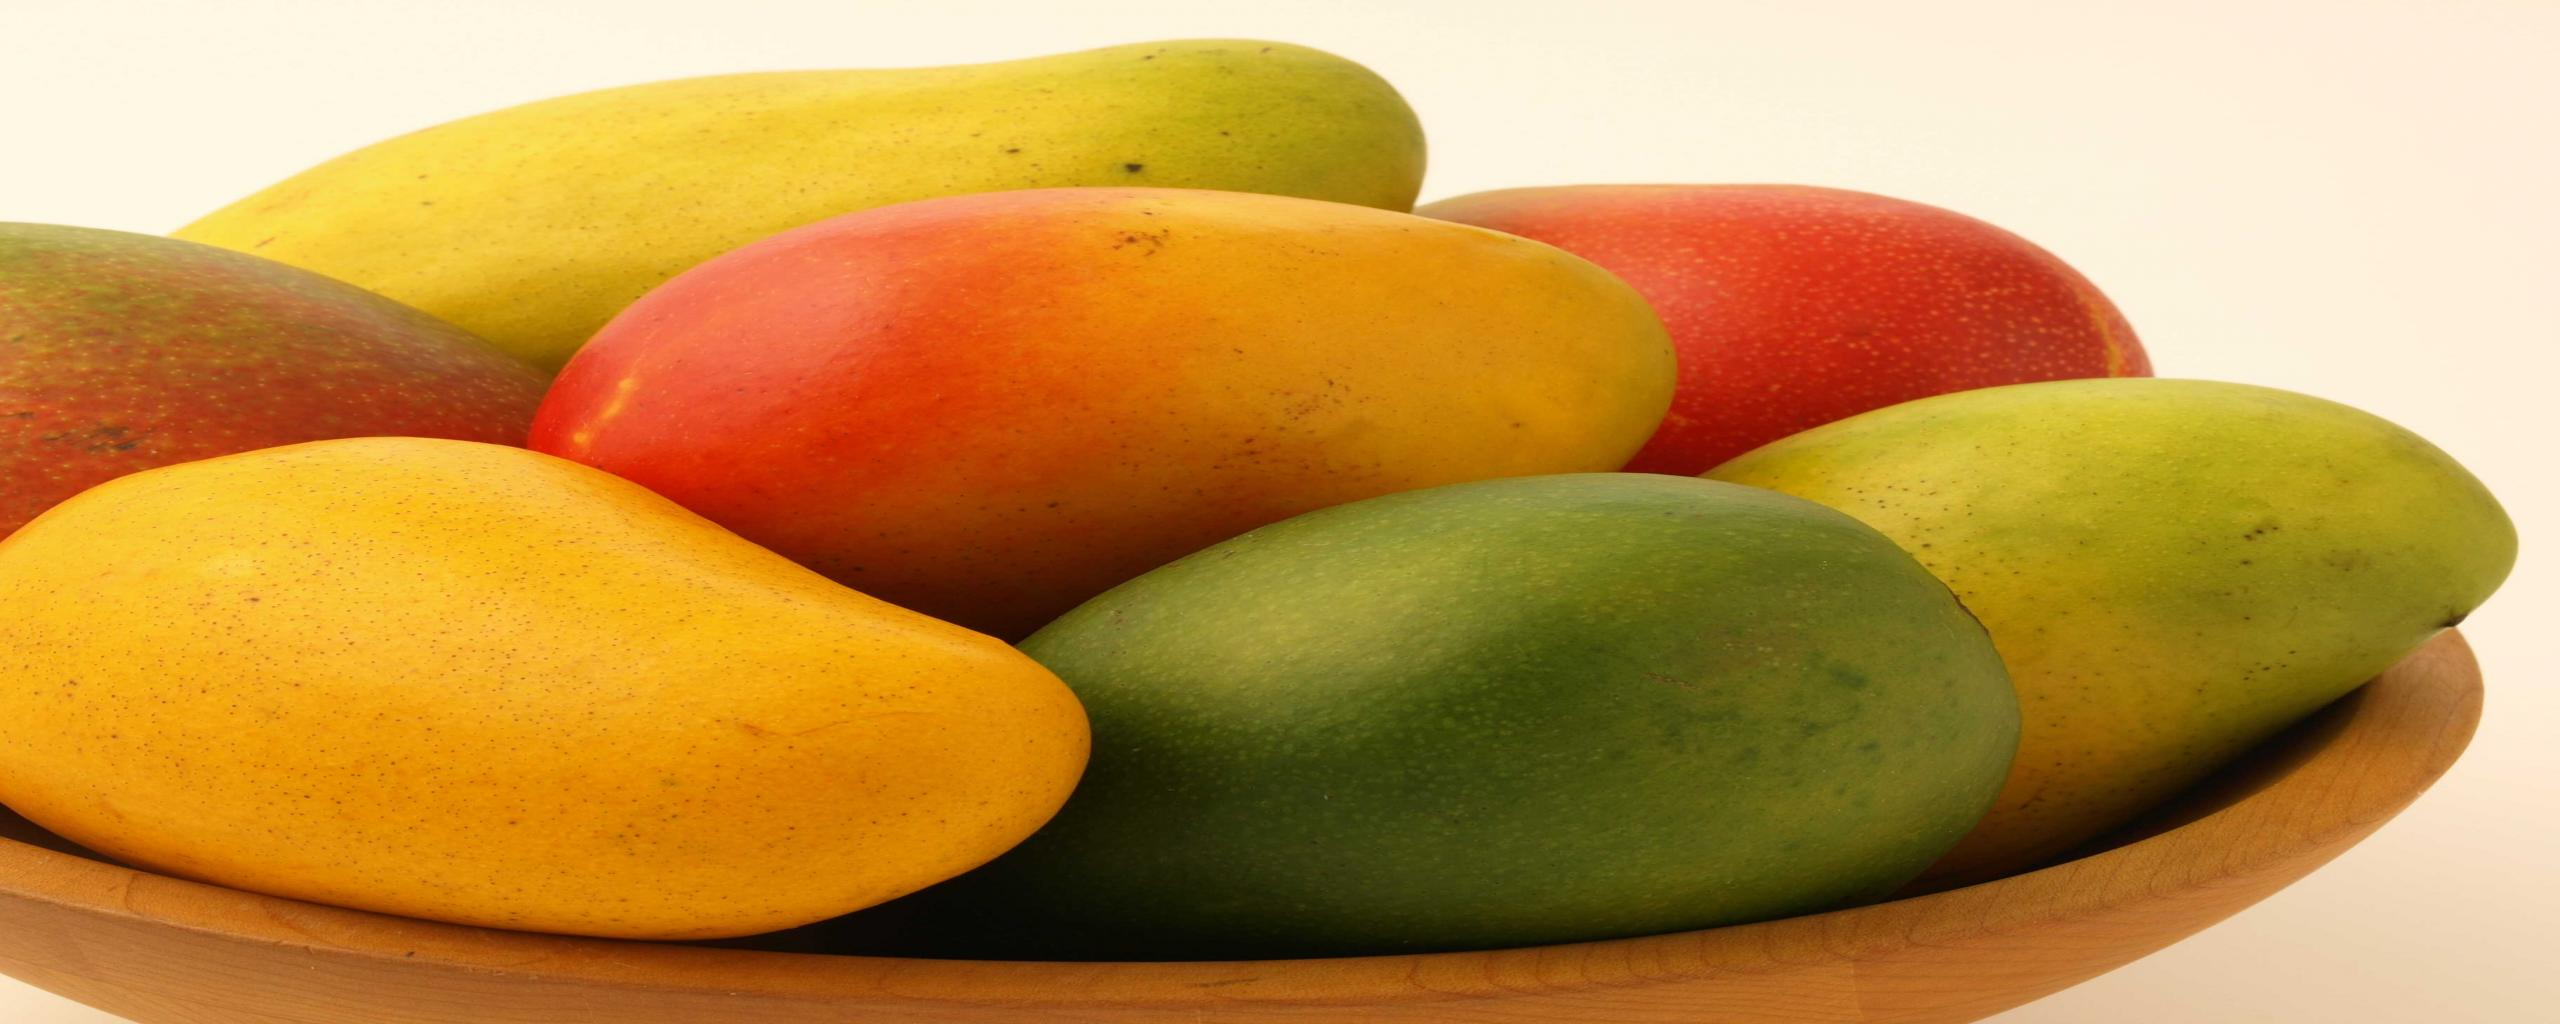 Mango fruit wallpaper free download